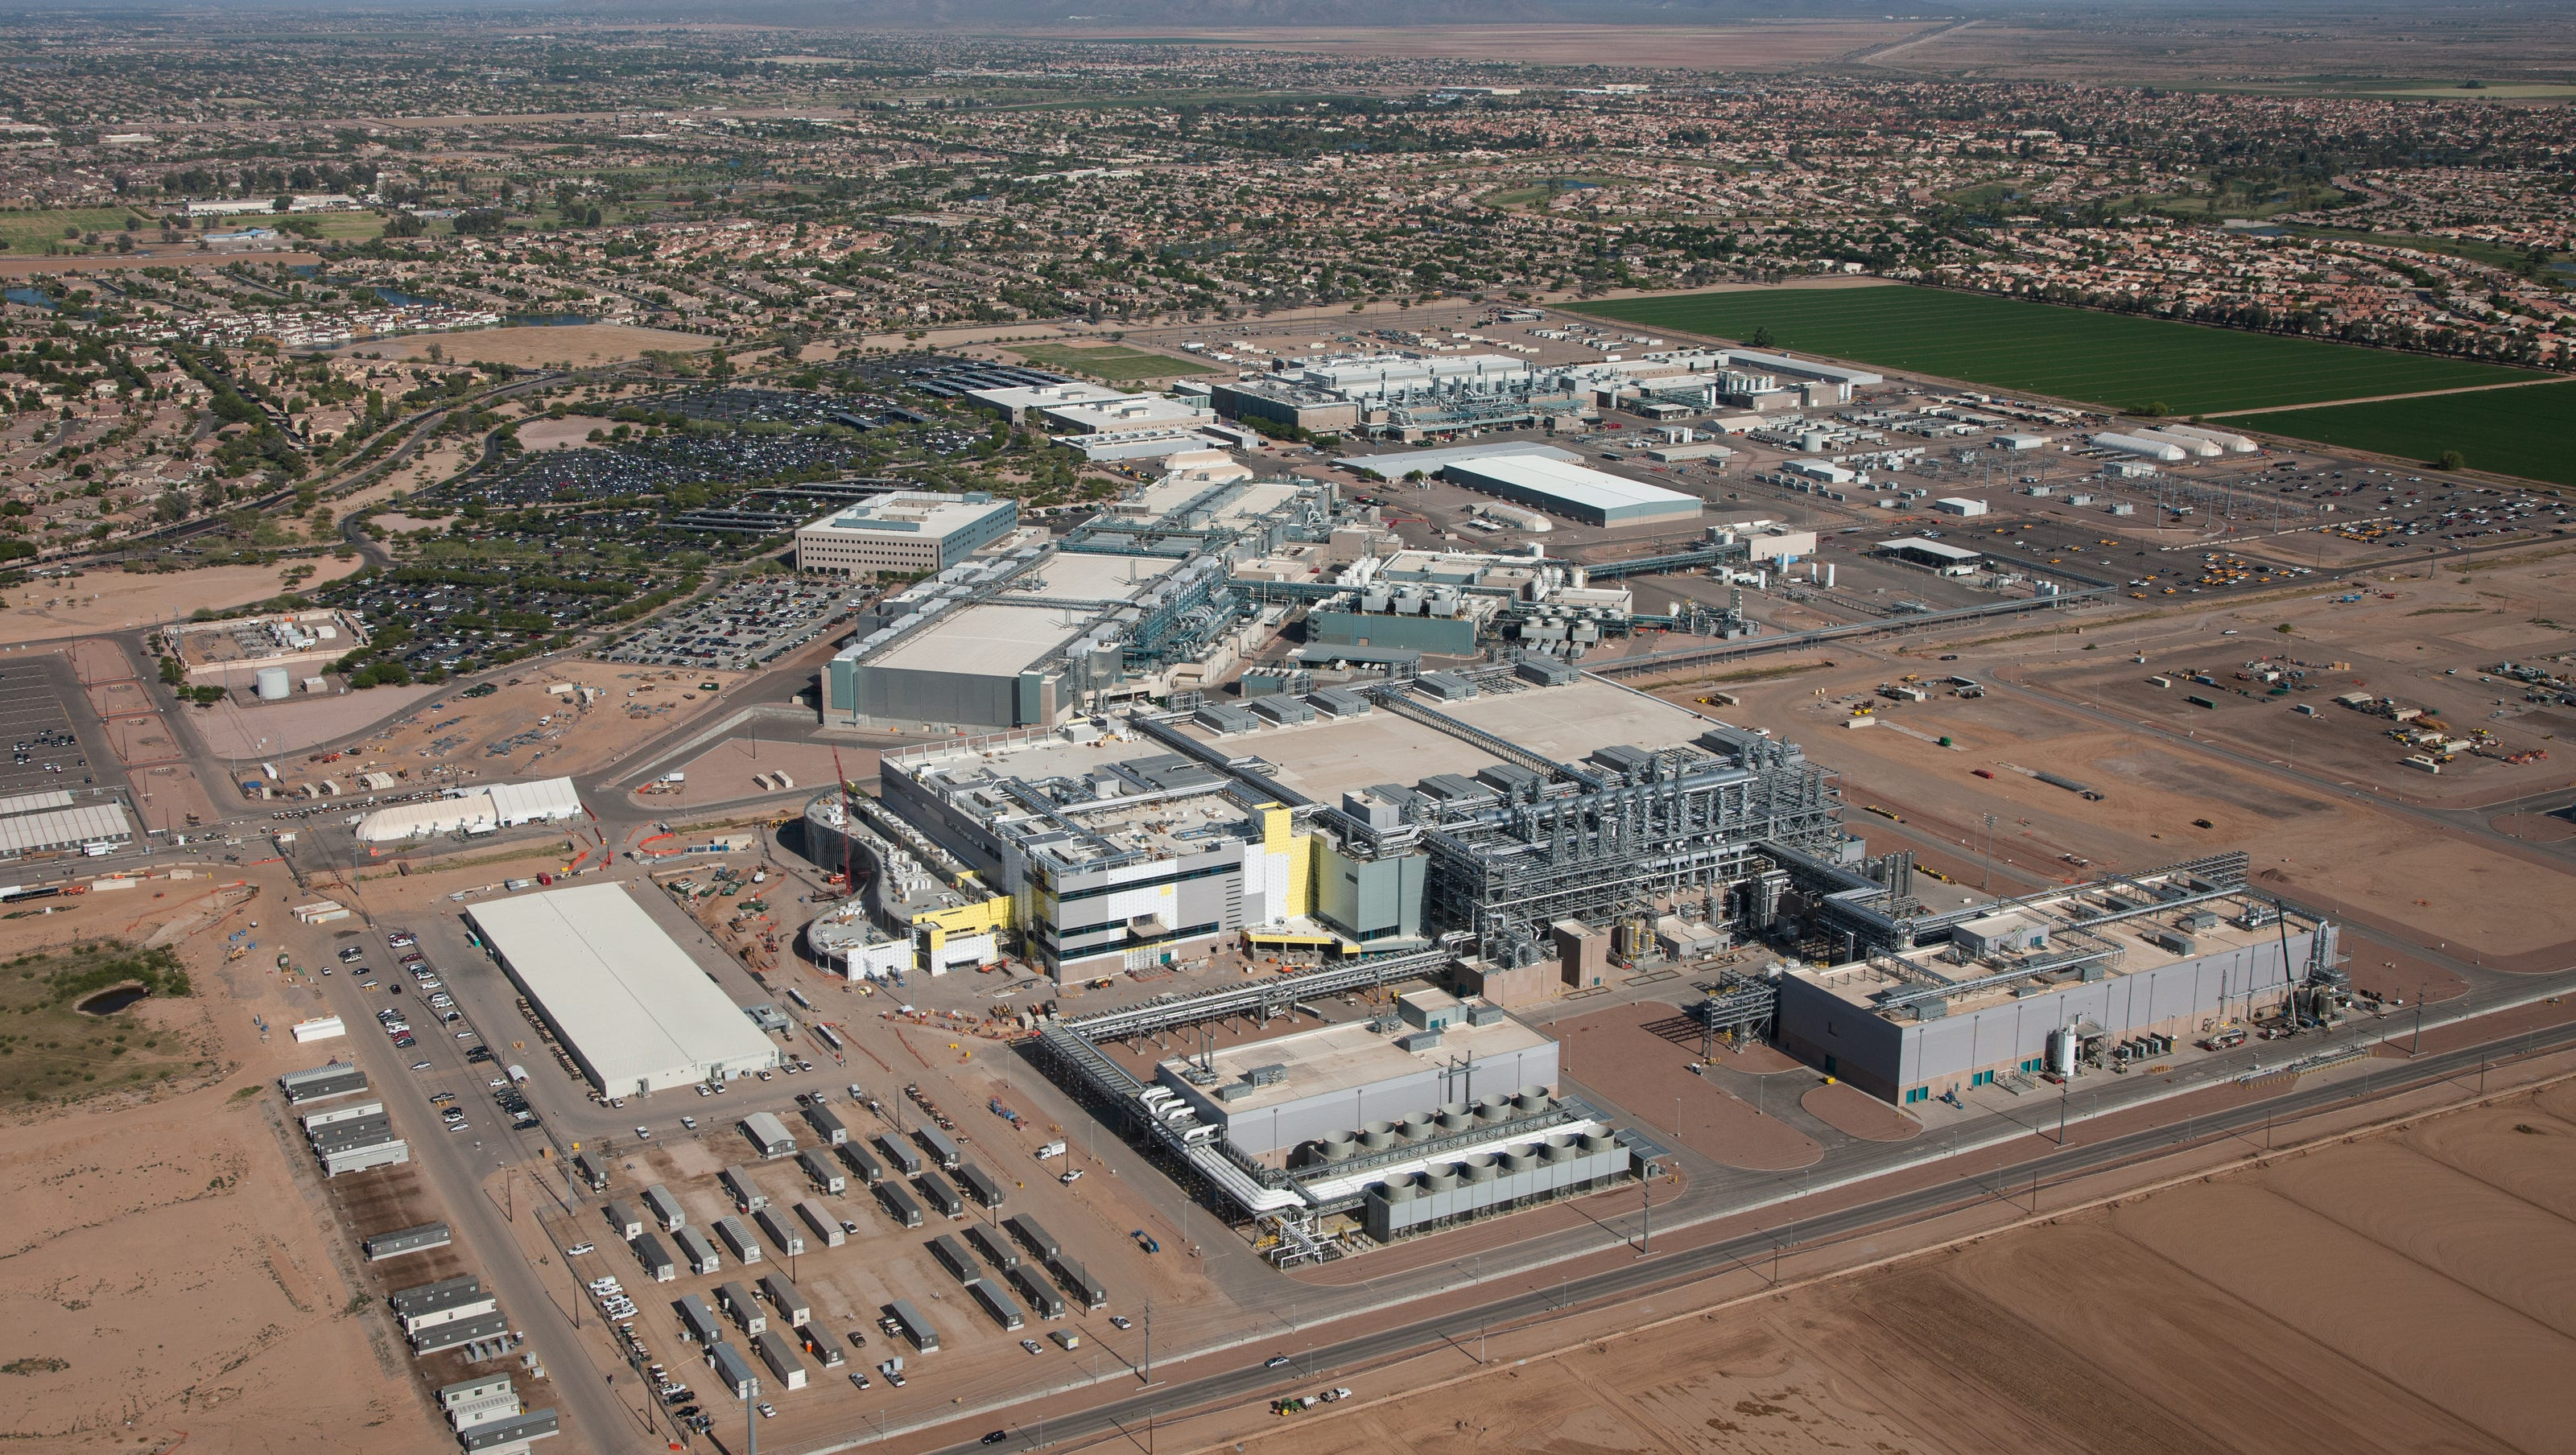 Intel Says It S Investing 7b In Chandler Facility Bringing 3k Jobs